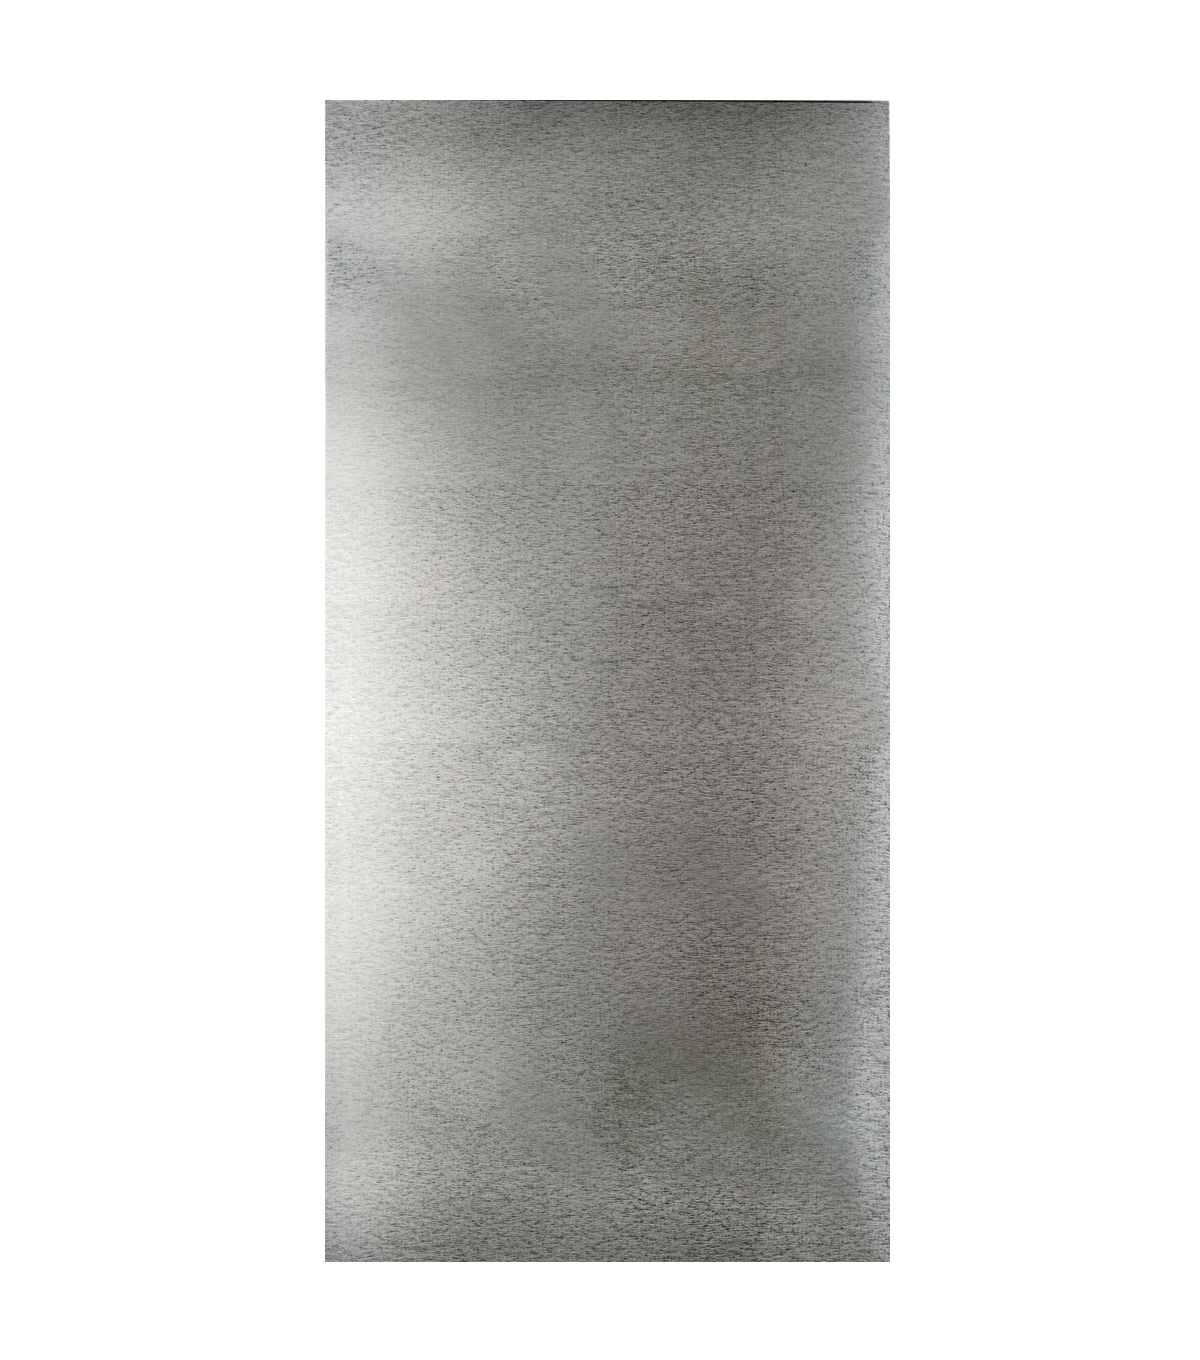 Galvanized Steel Sheet 12\u0022X24\u0022-Silver